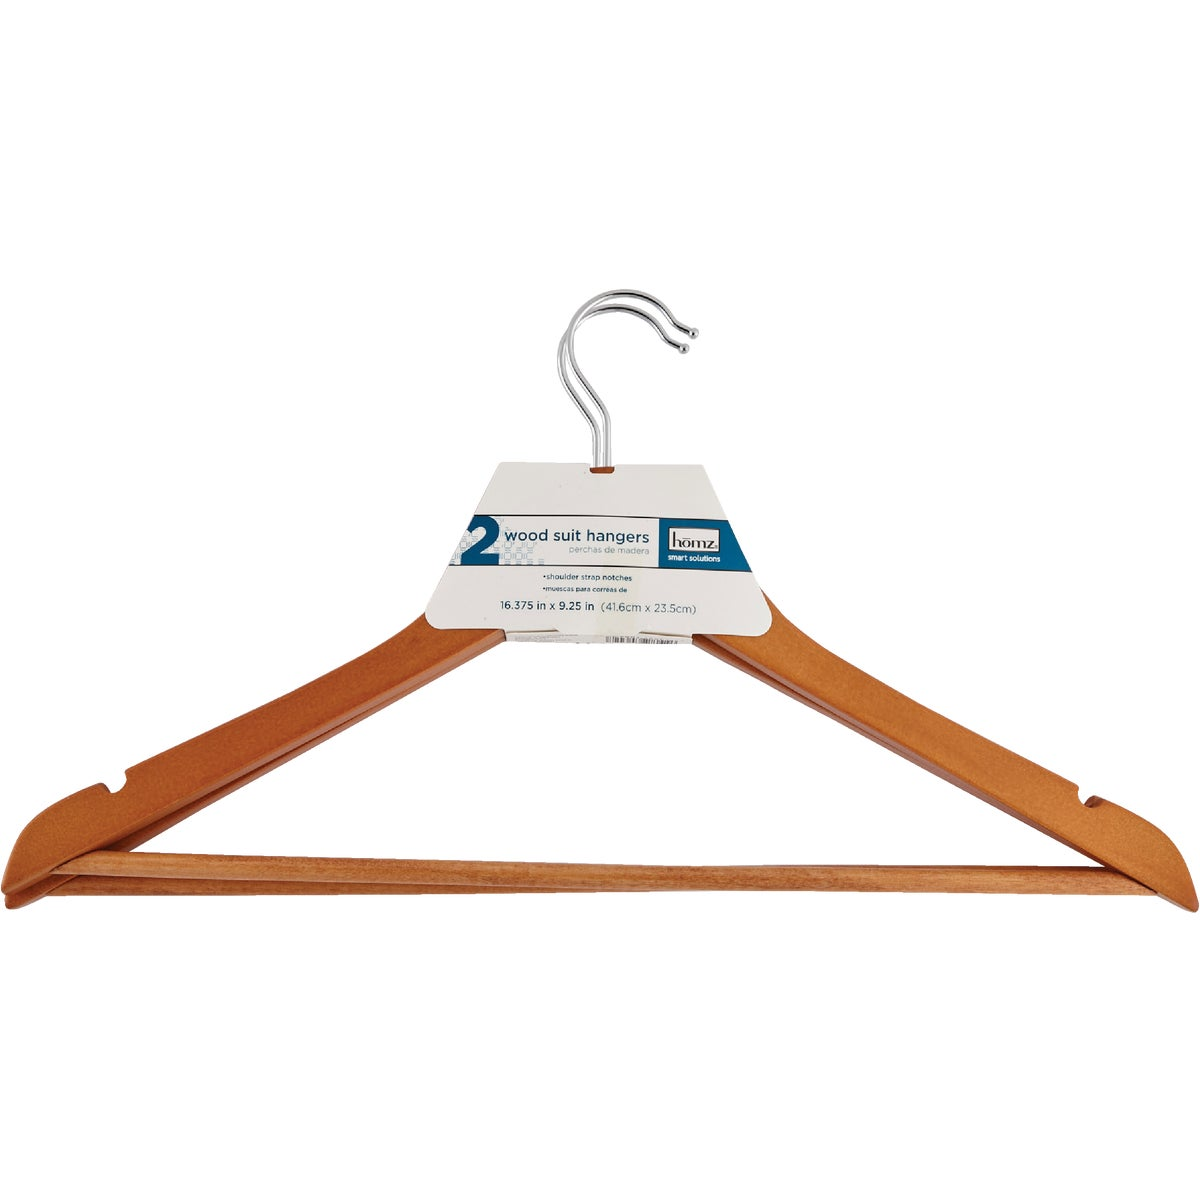 2PK WOOD SUIT HANGER - 8654WN2.18 by Homz  Seymour